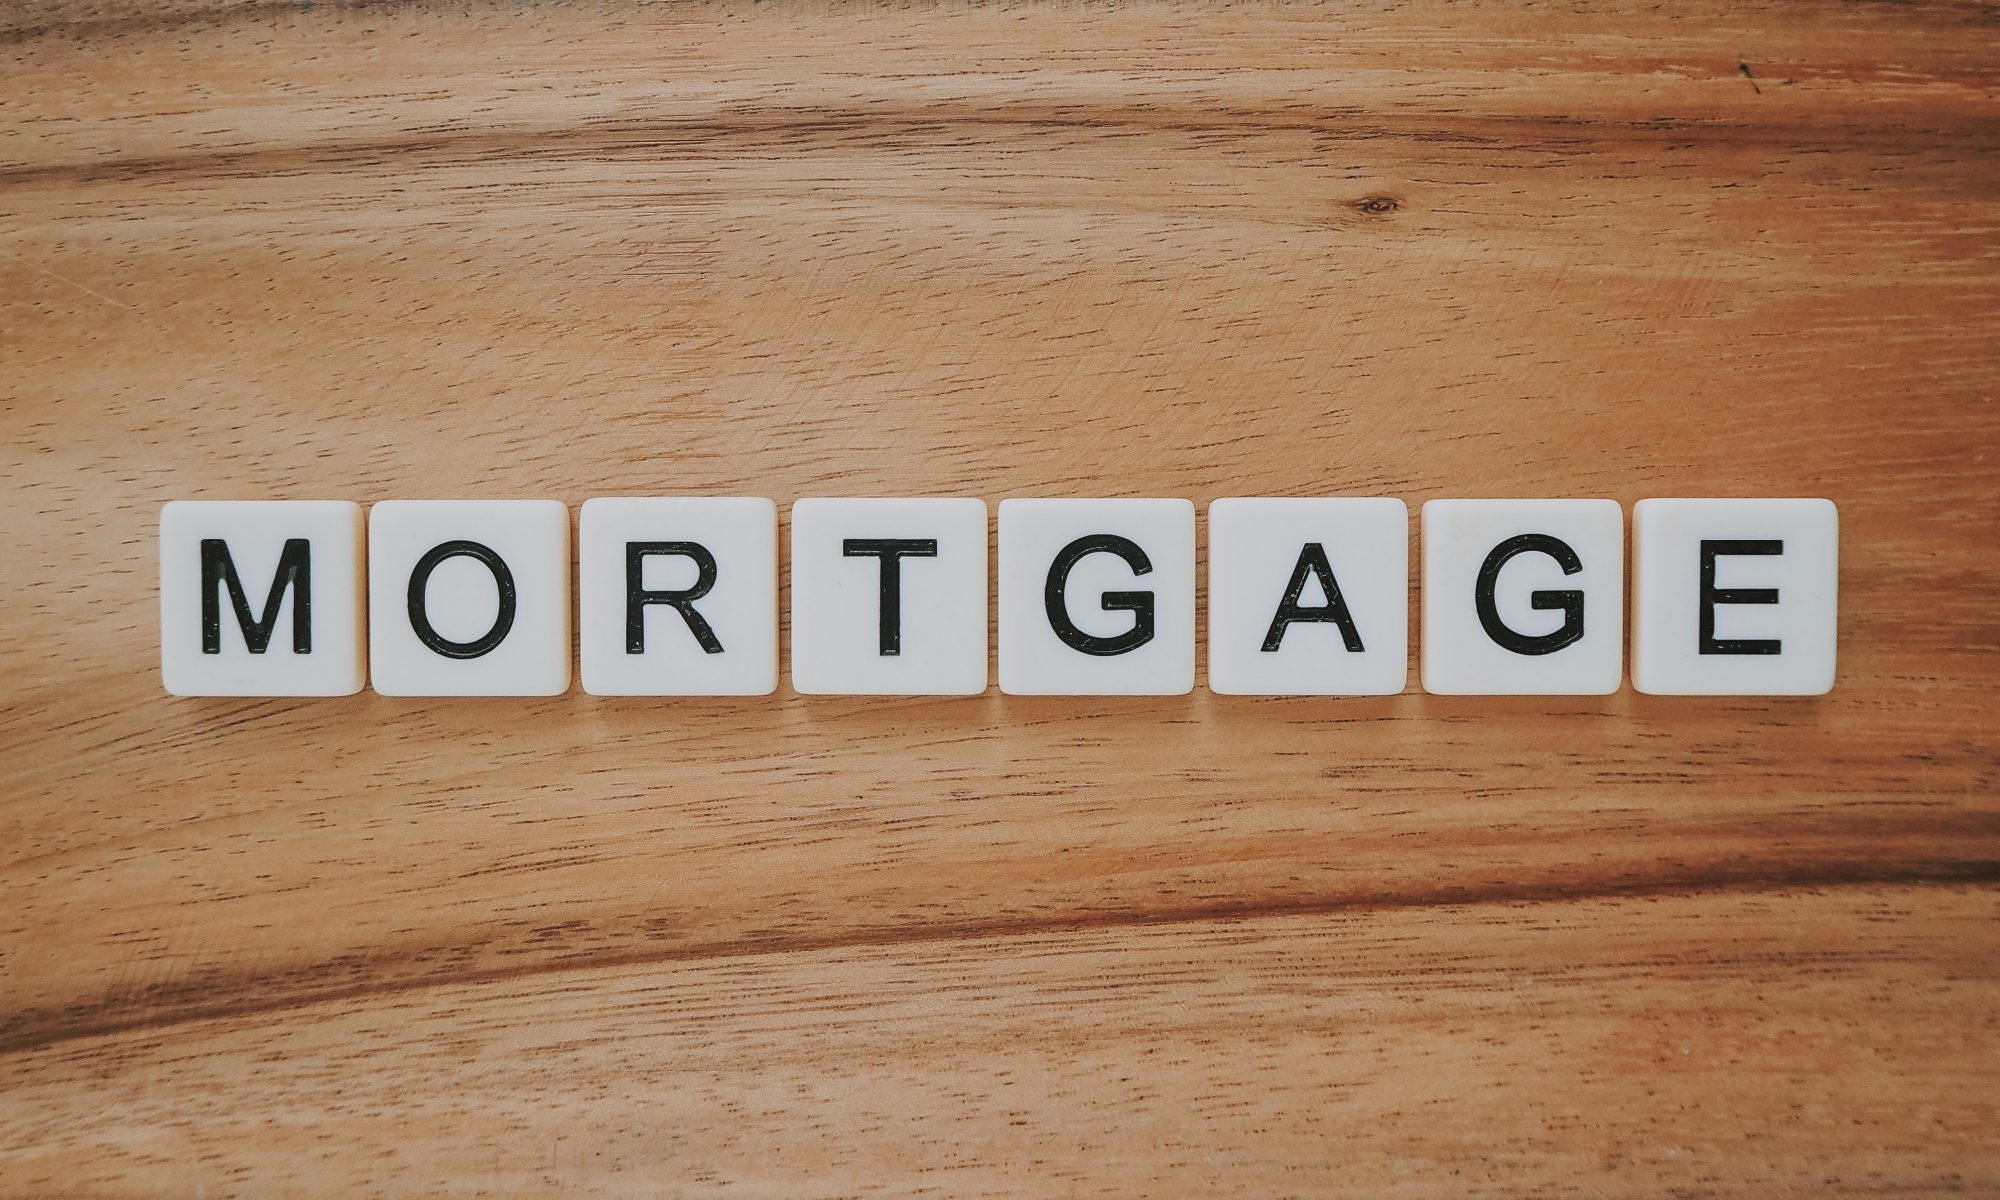 mortgage Scrabble tiles